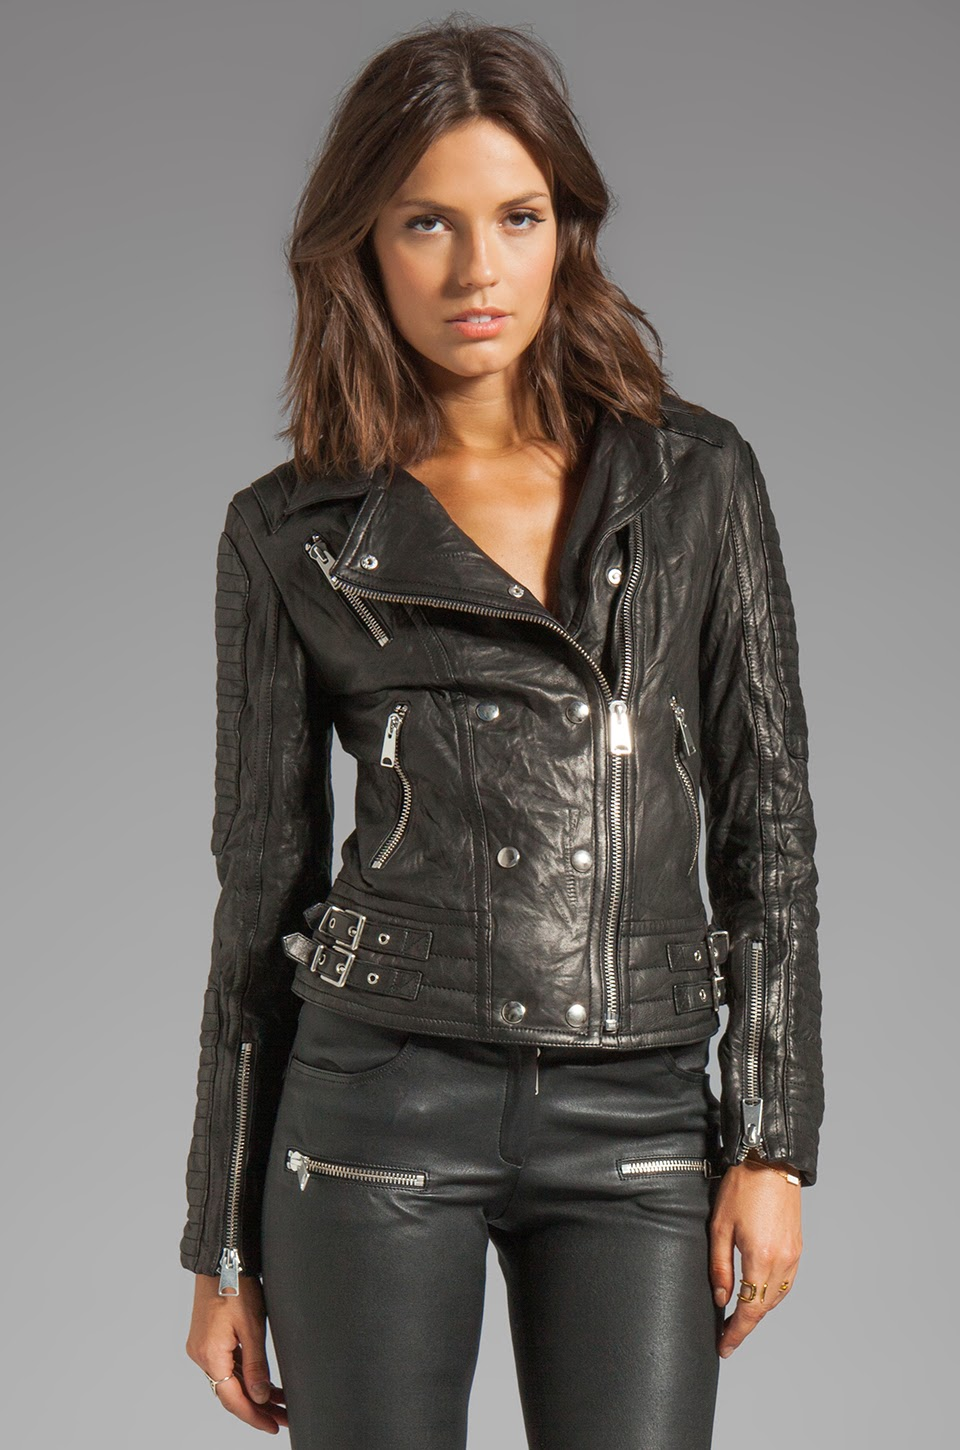 Leather motorcycle jackets for women fashion 70